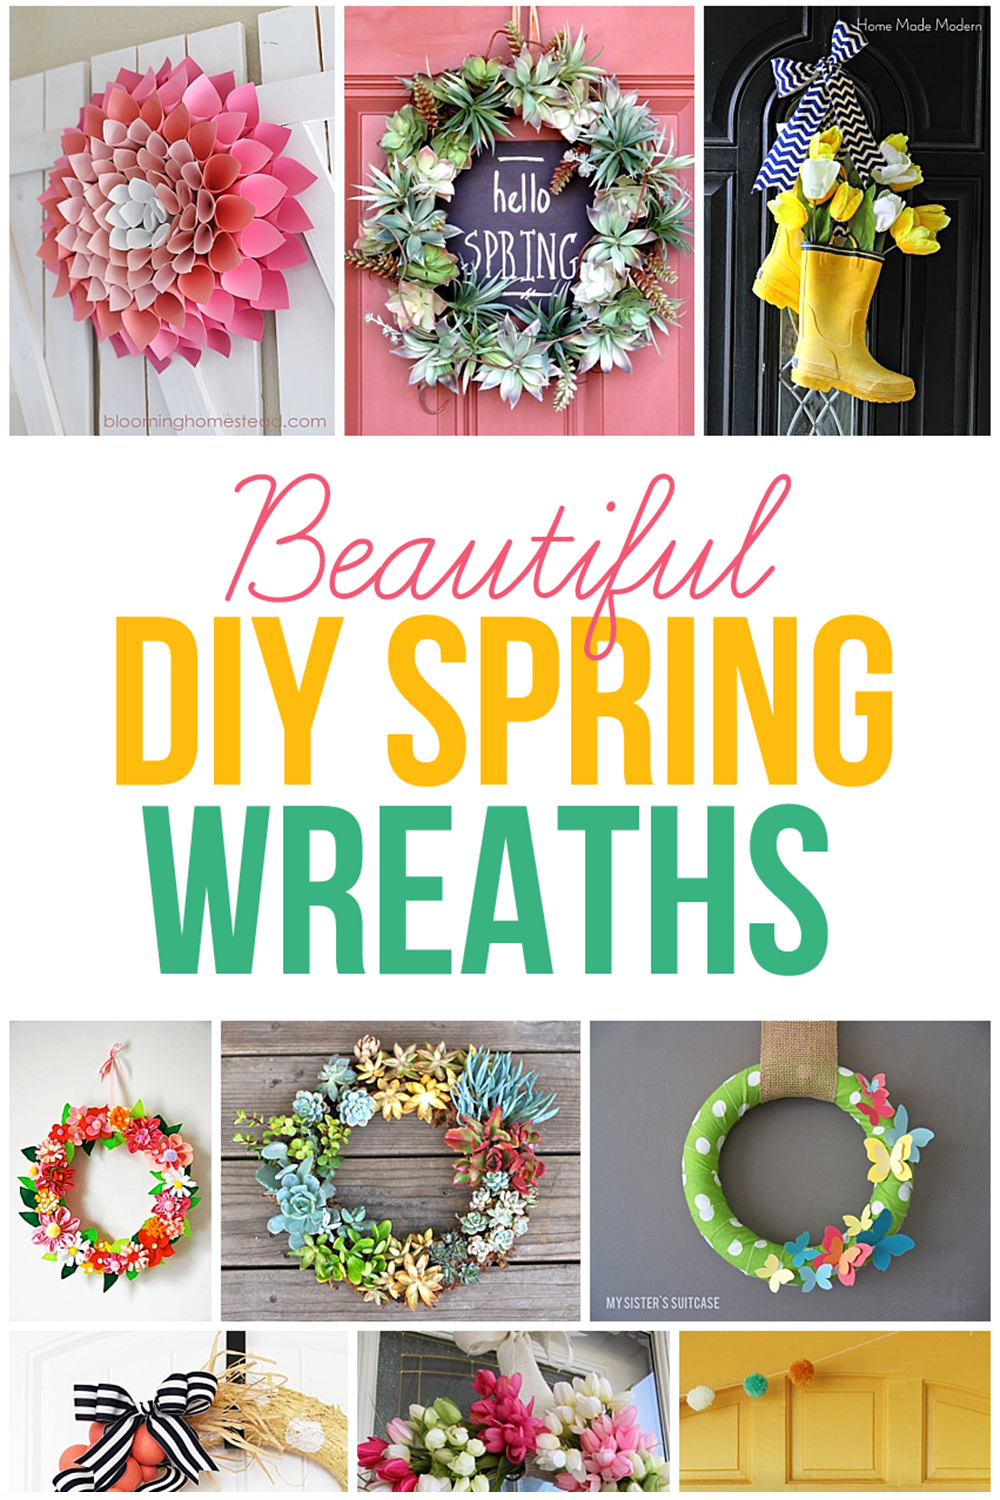 Beautiful Diy Spring Wreaths To Make Landeelu Com